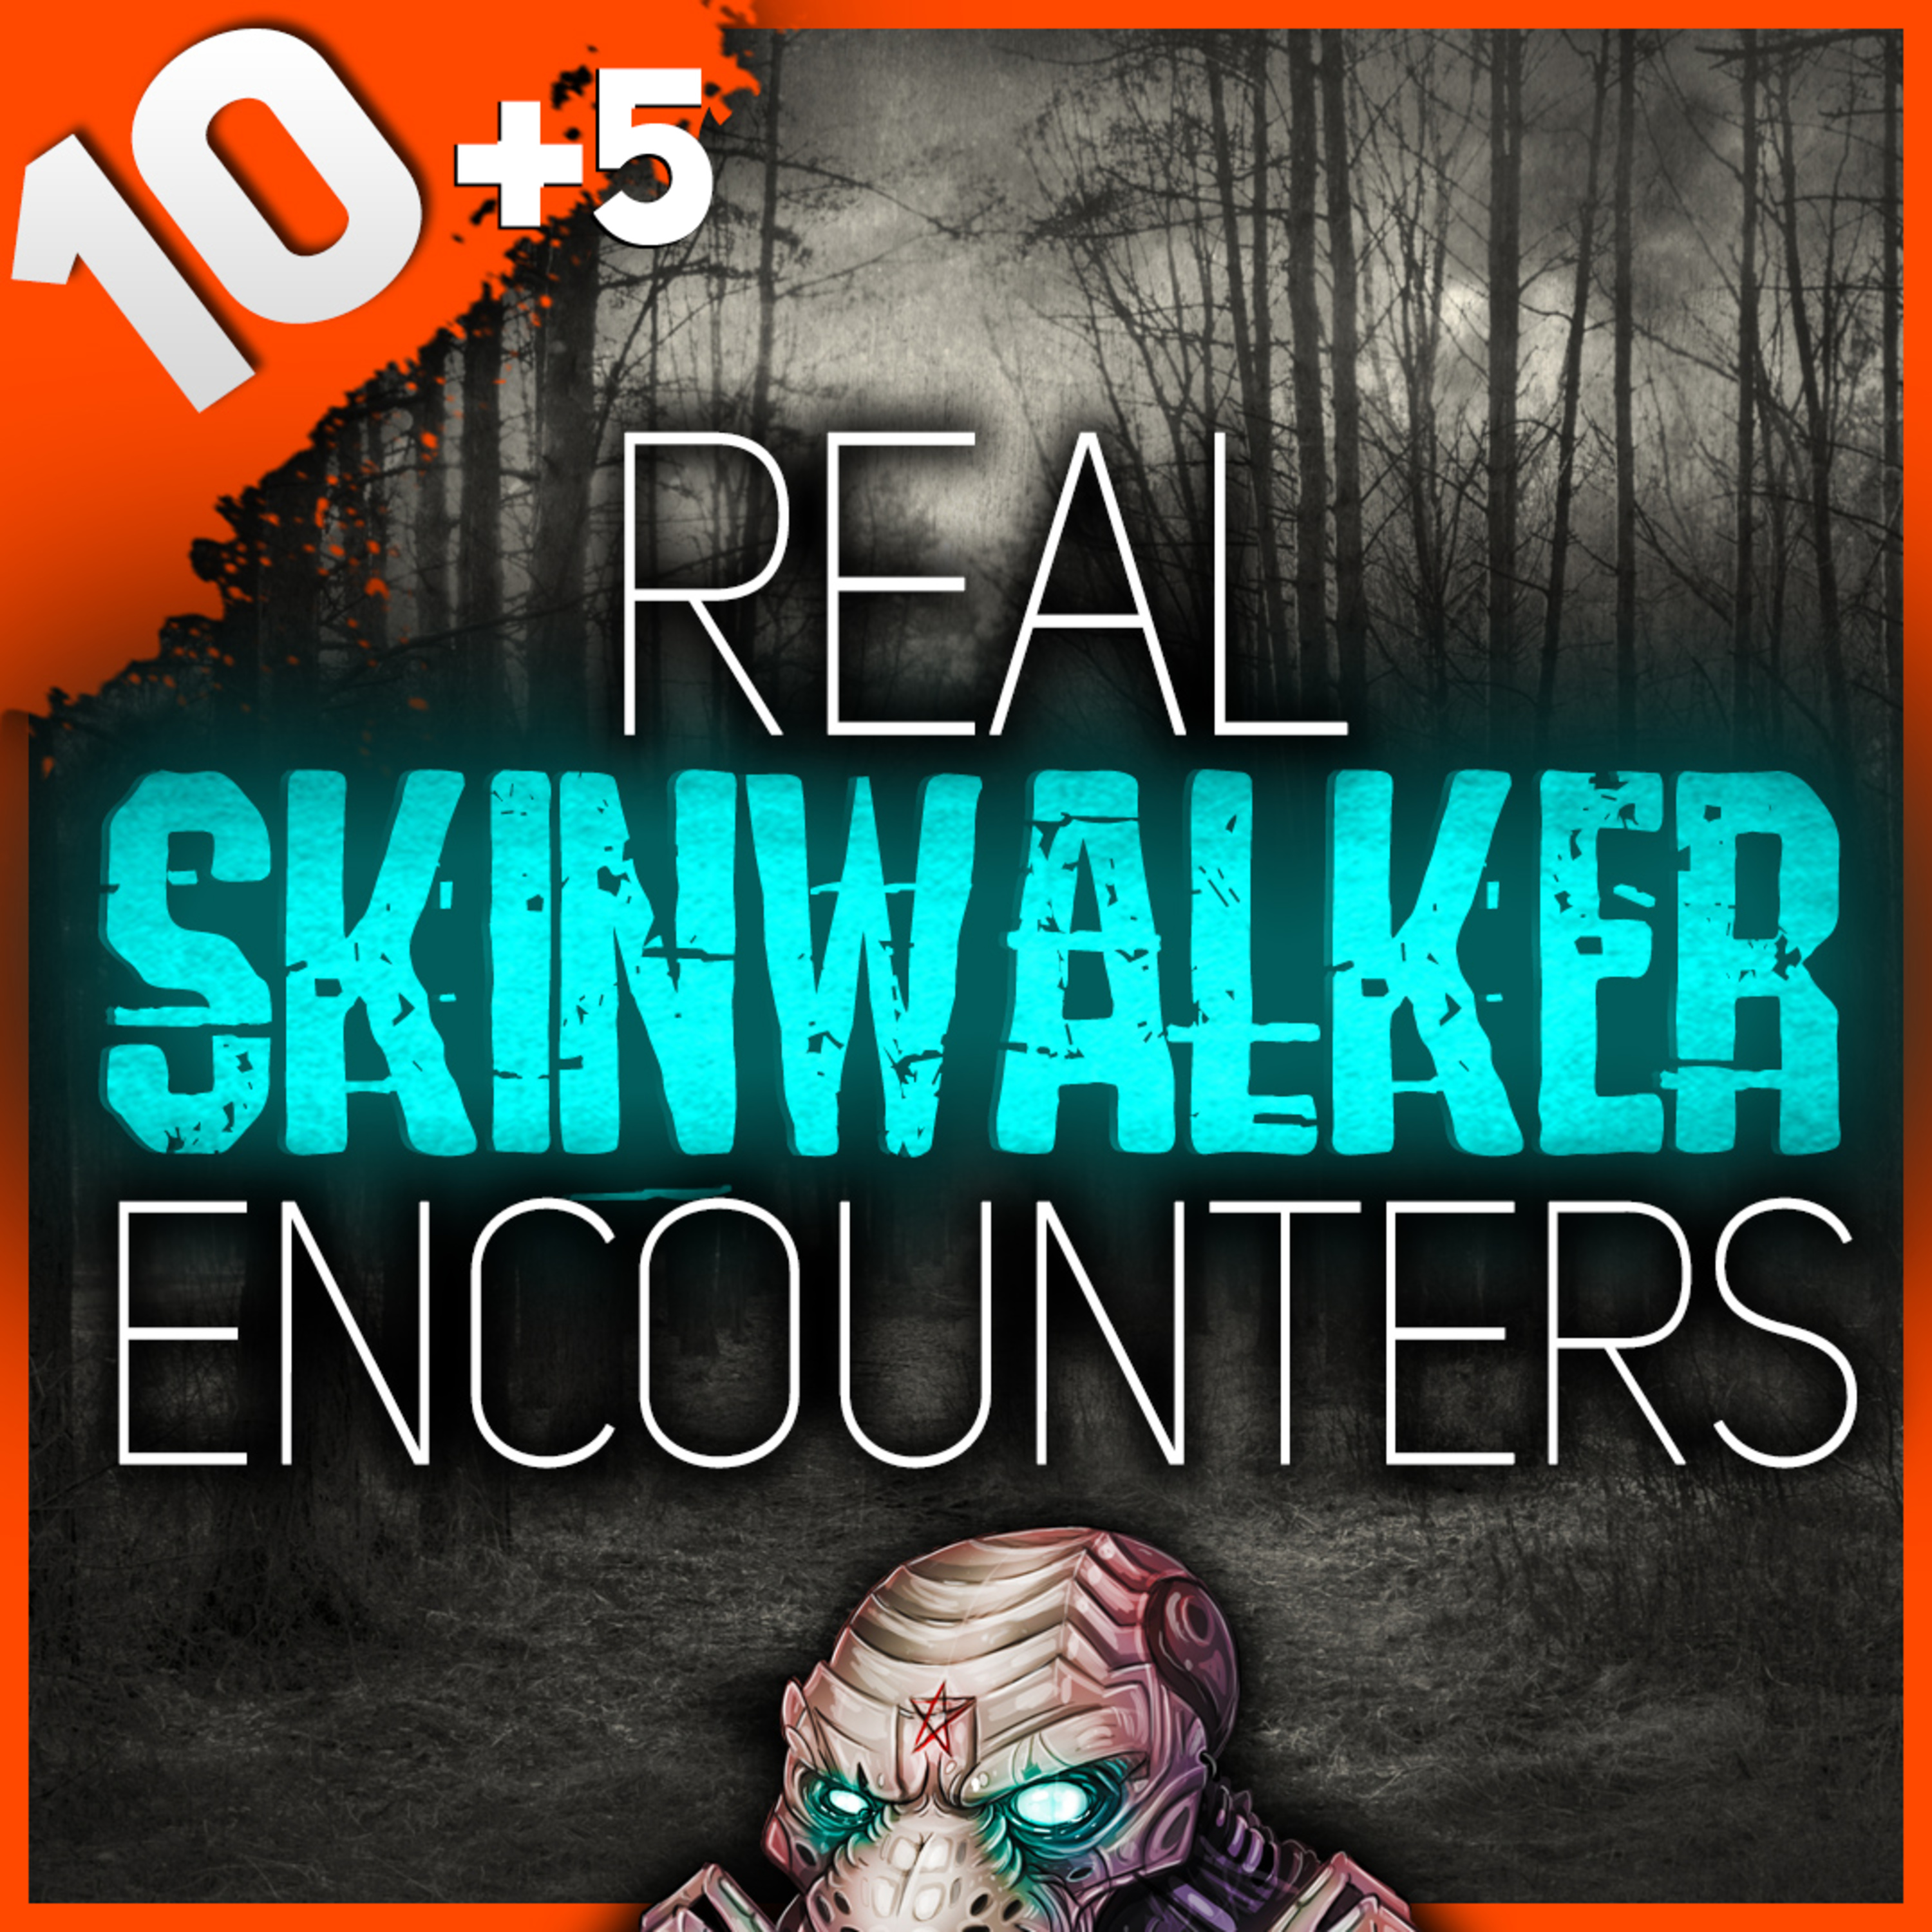 15 REAL Skinwalker Encounters and Other Forest Horror